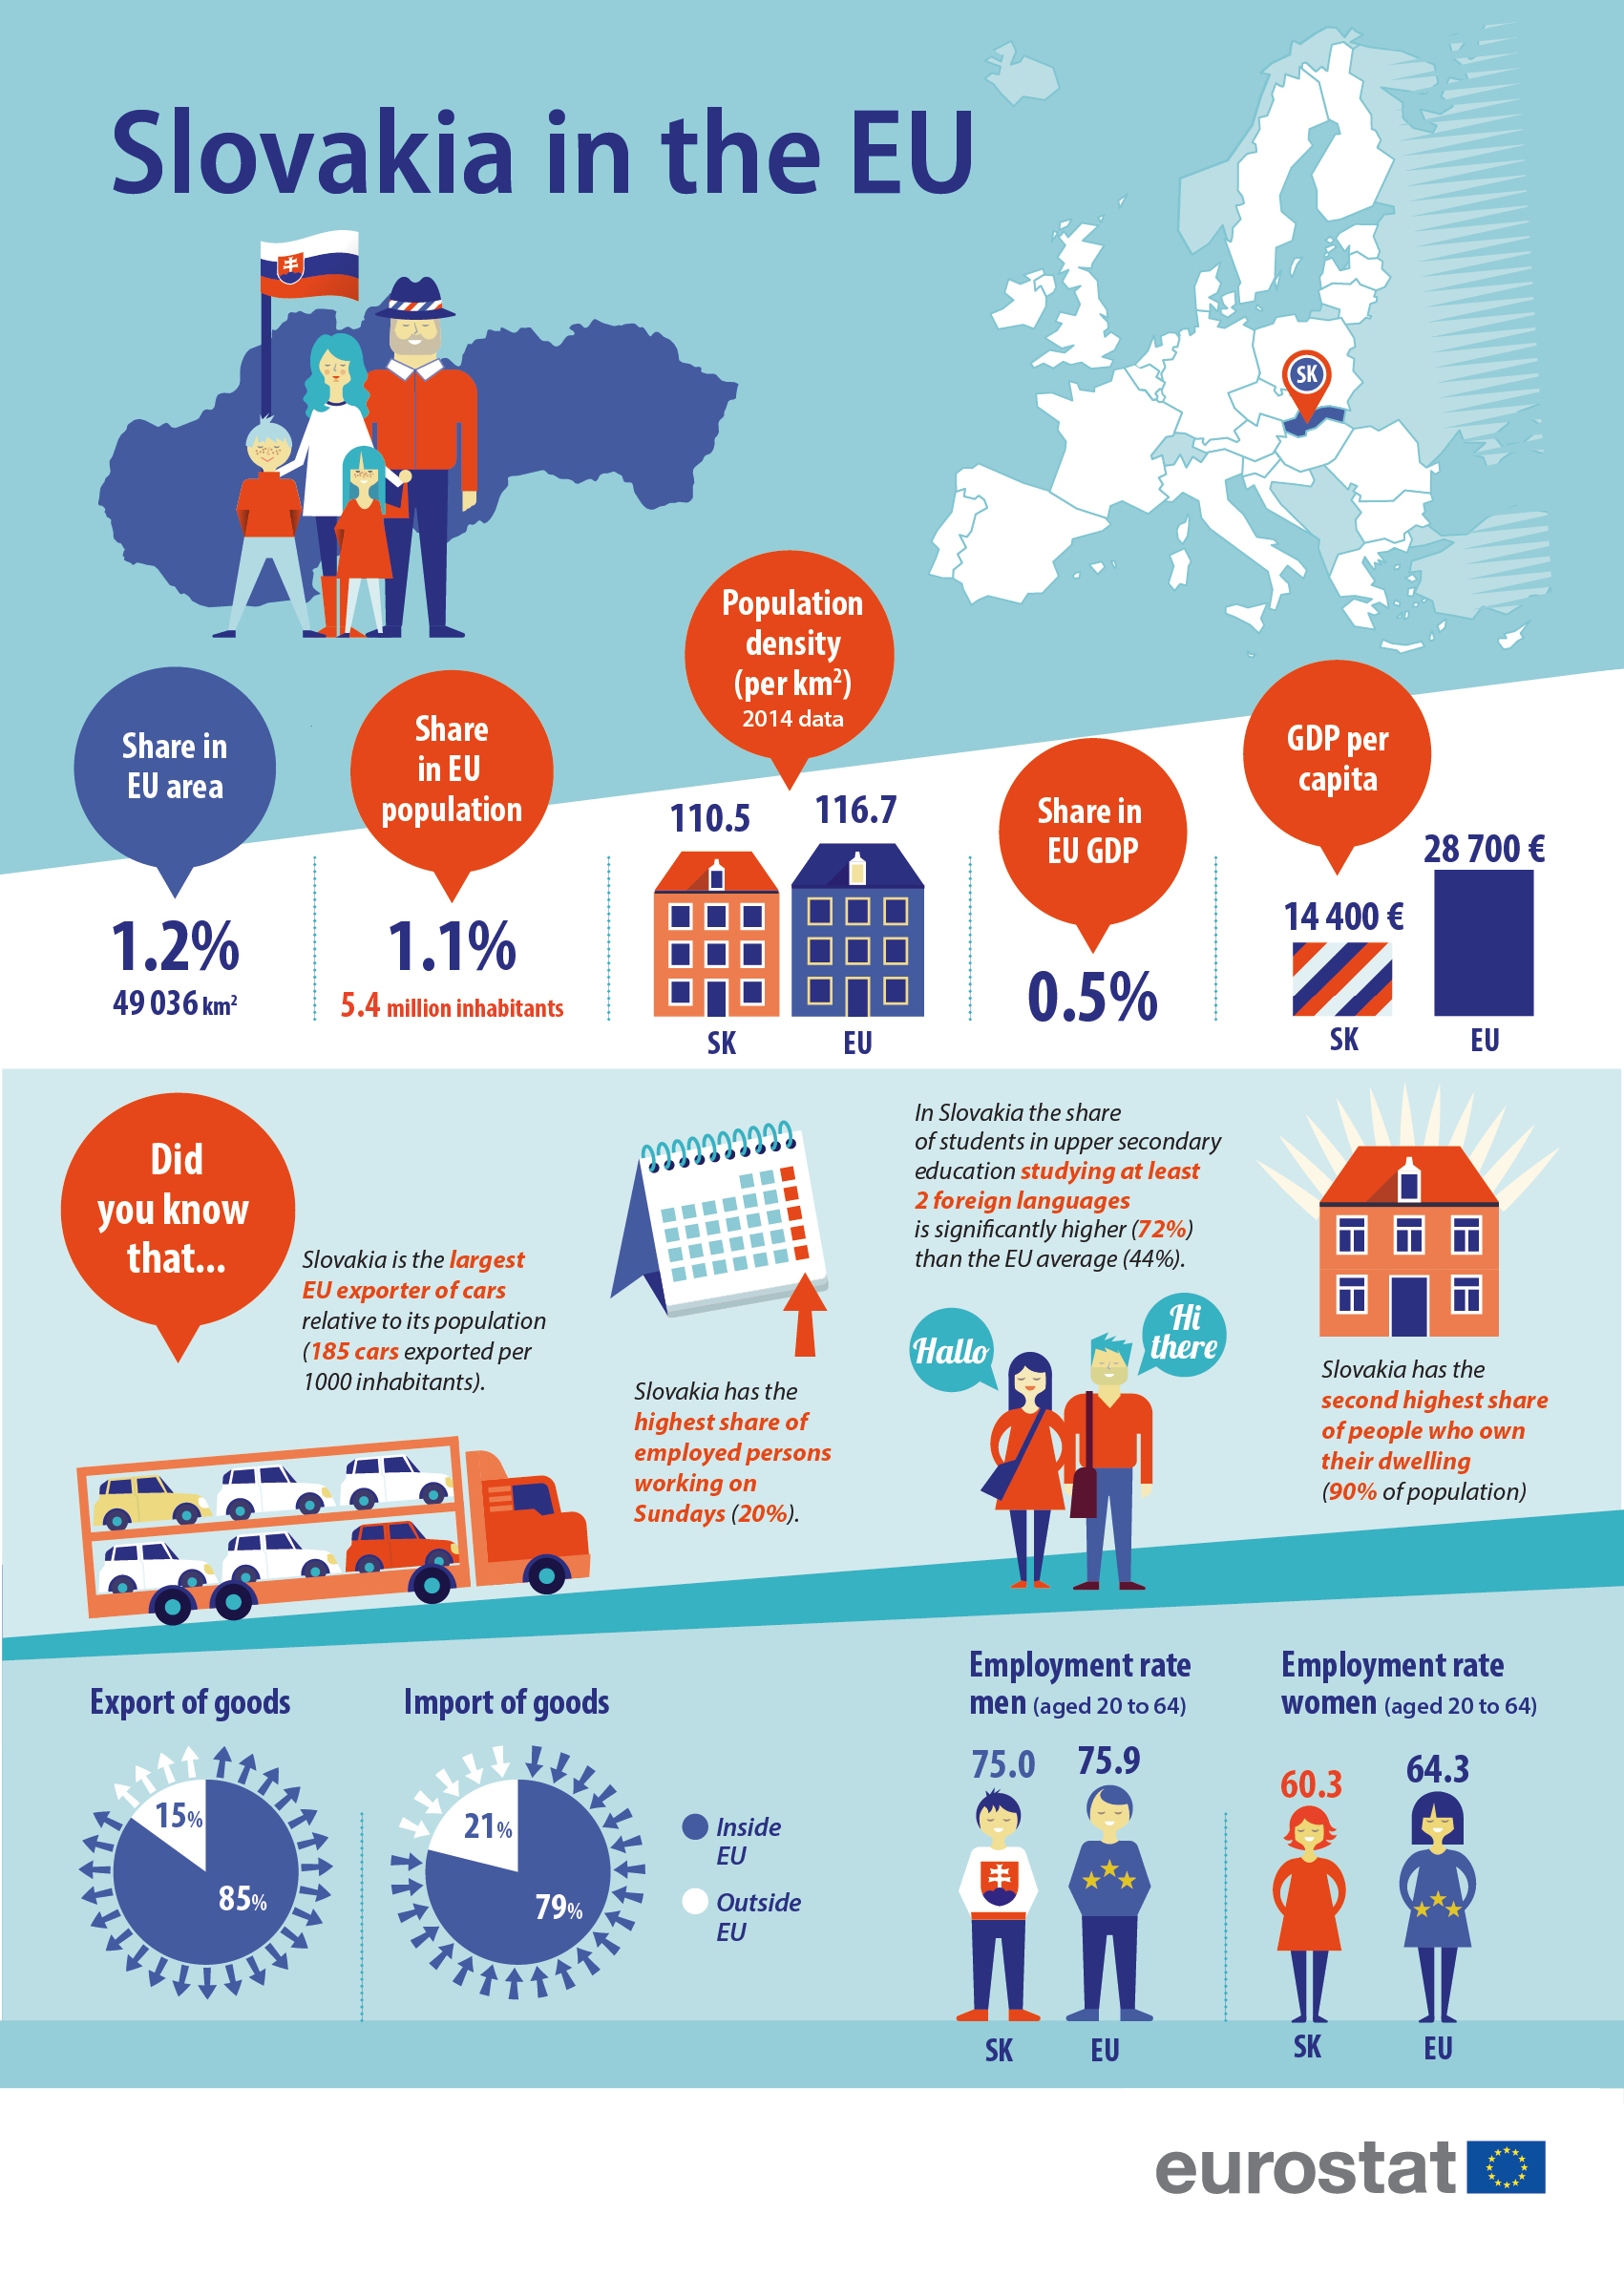 Slovakia in the EU infographic image